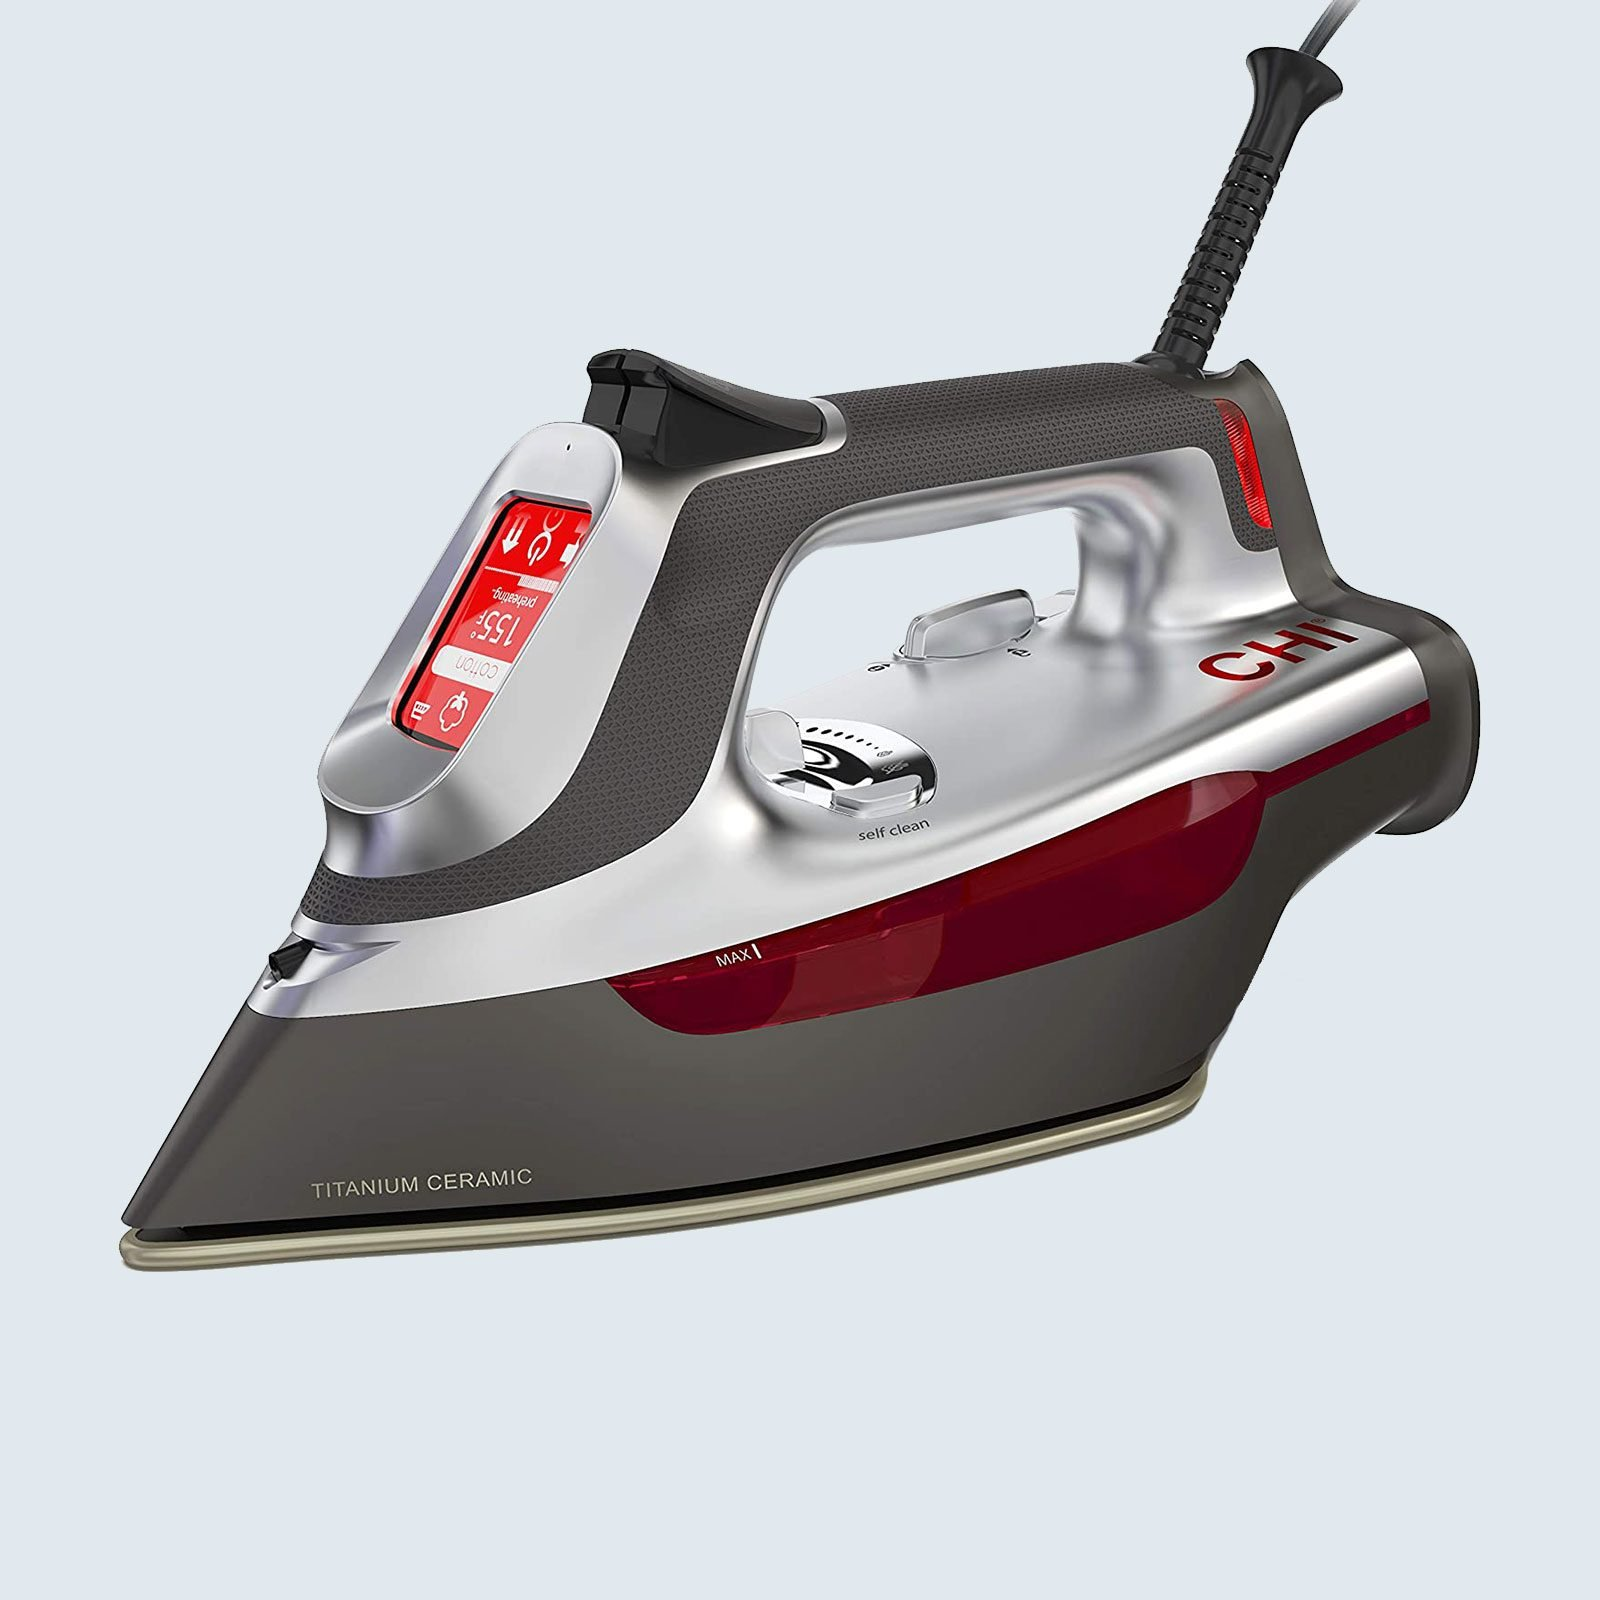 CHI Steam Iron with Advanced Touchscreen